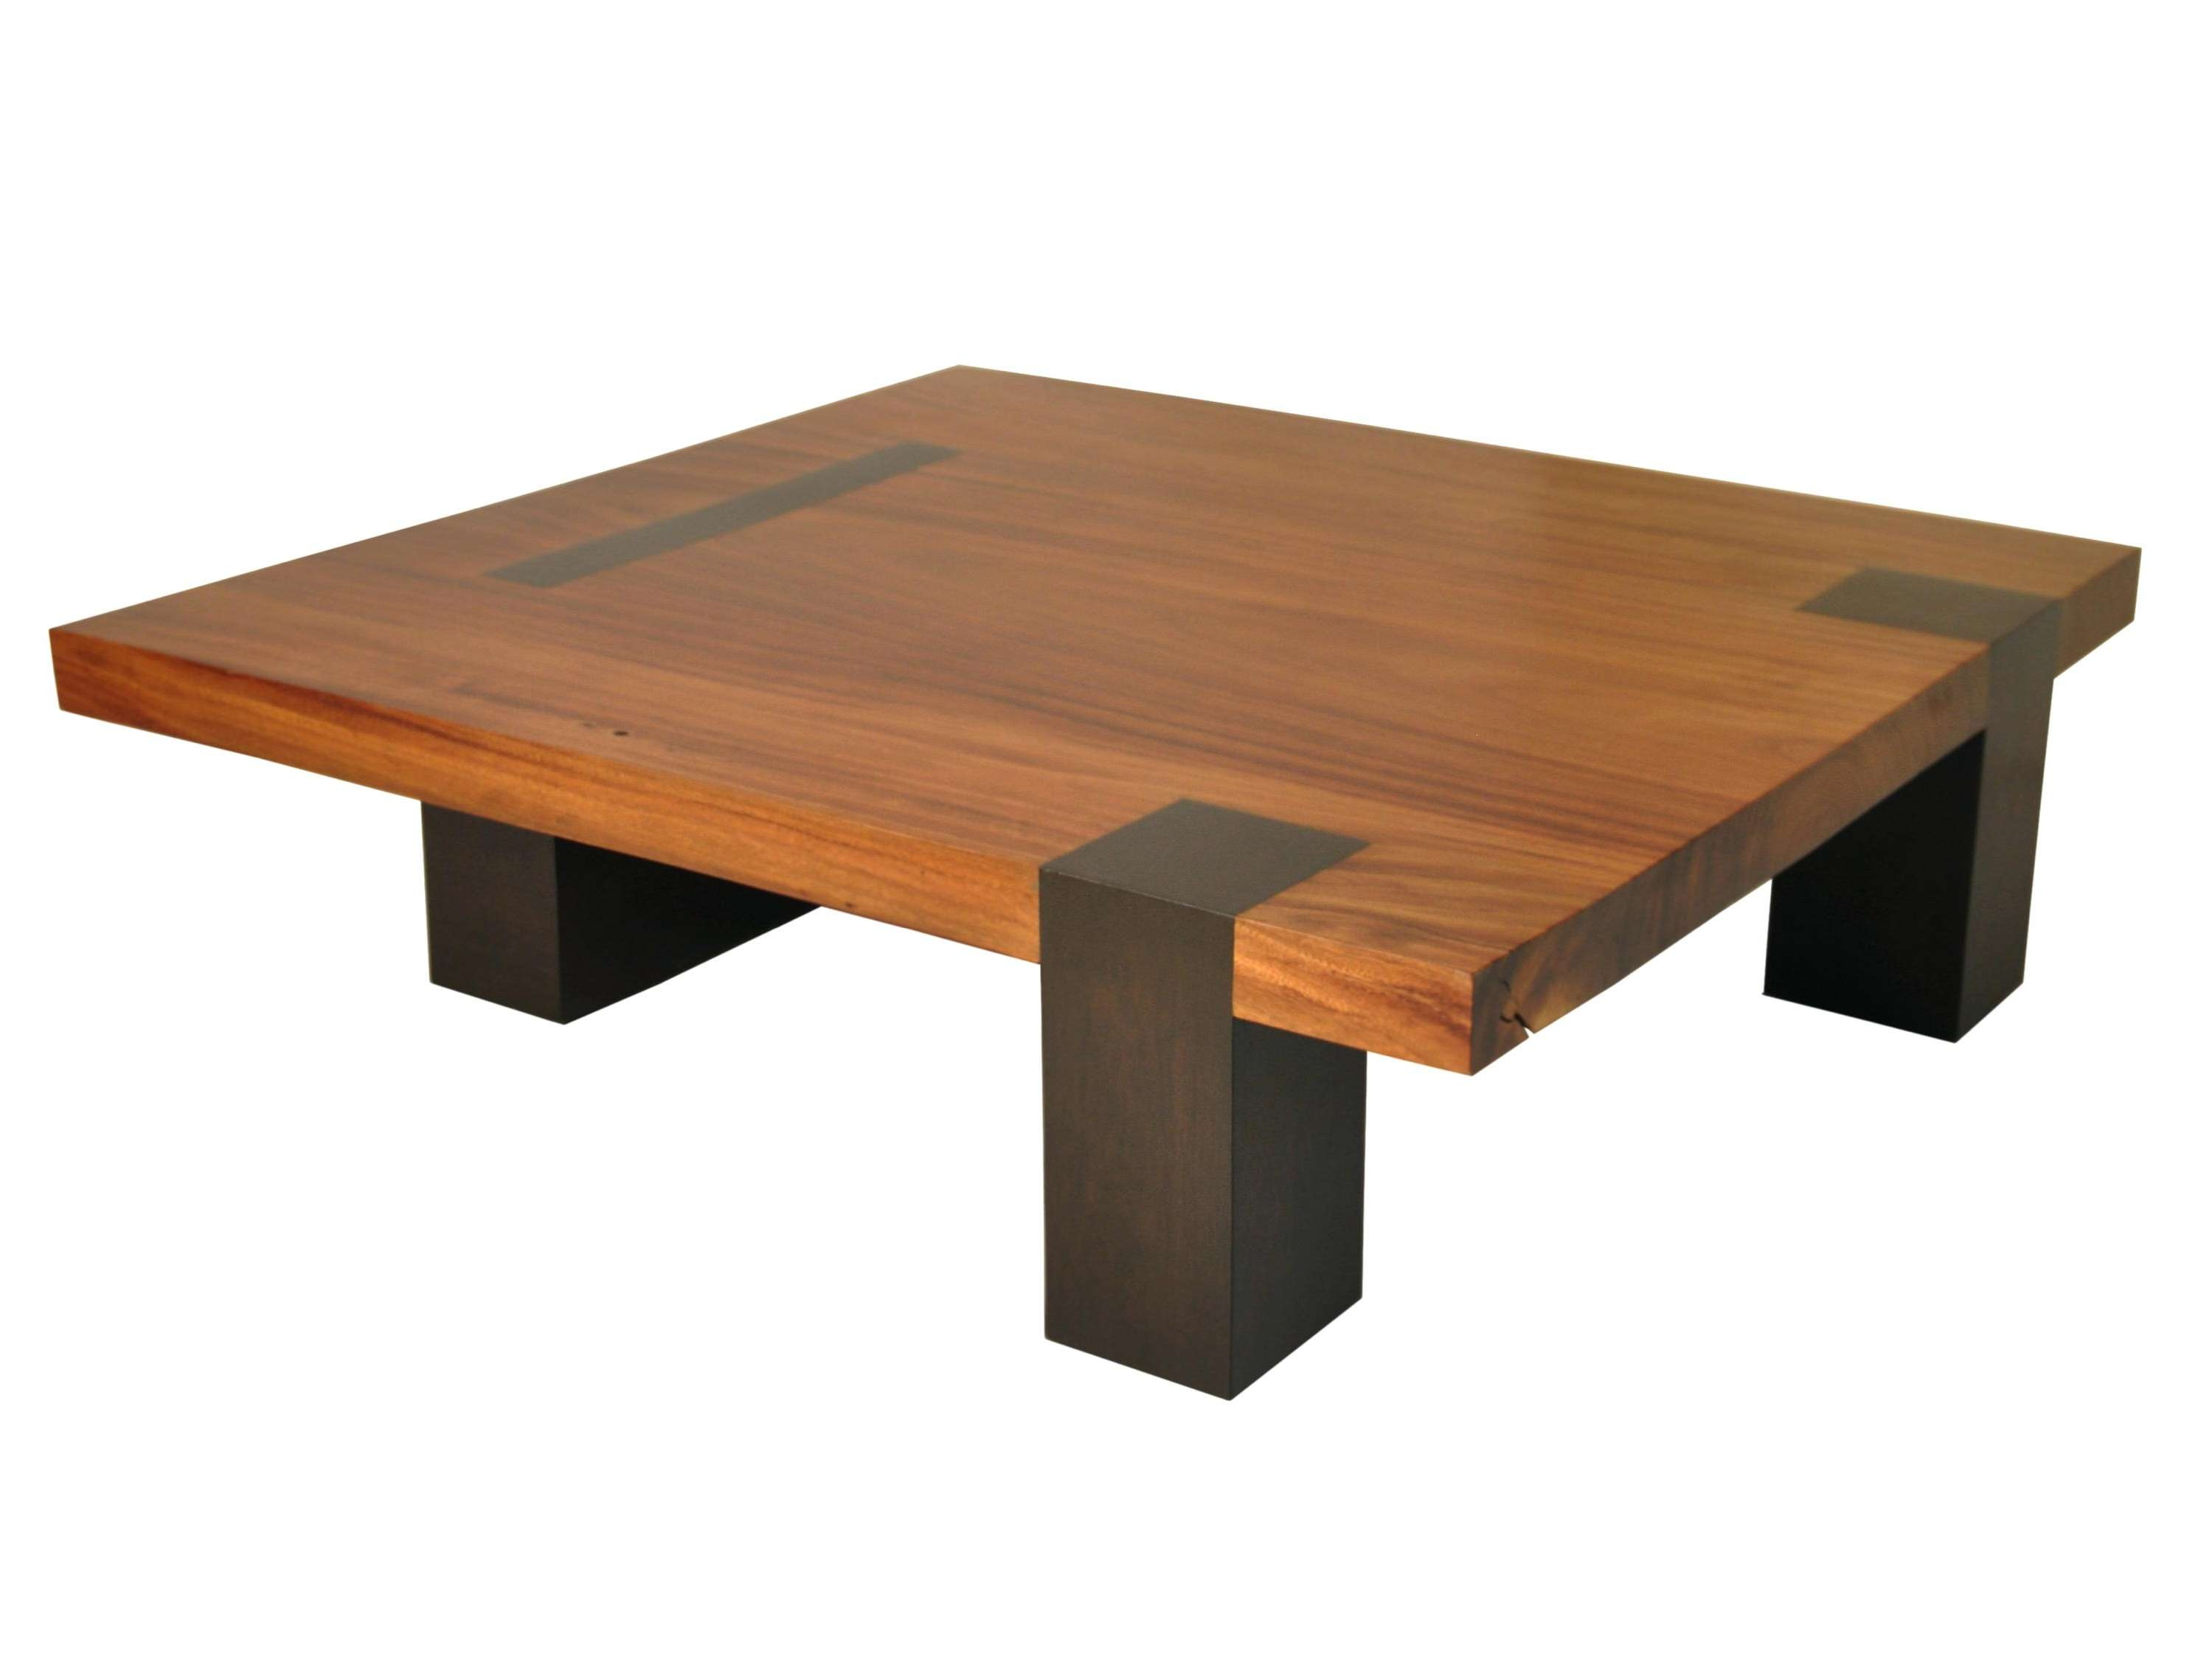 Most Recently Released Low Wooden Coffee Tables With Regard To Coffee Table : Wonderful Tea Table Online Low Coffee Table Black (View 14 of 20)